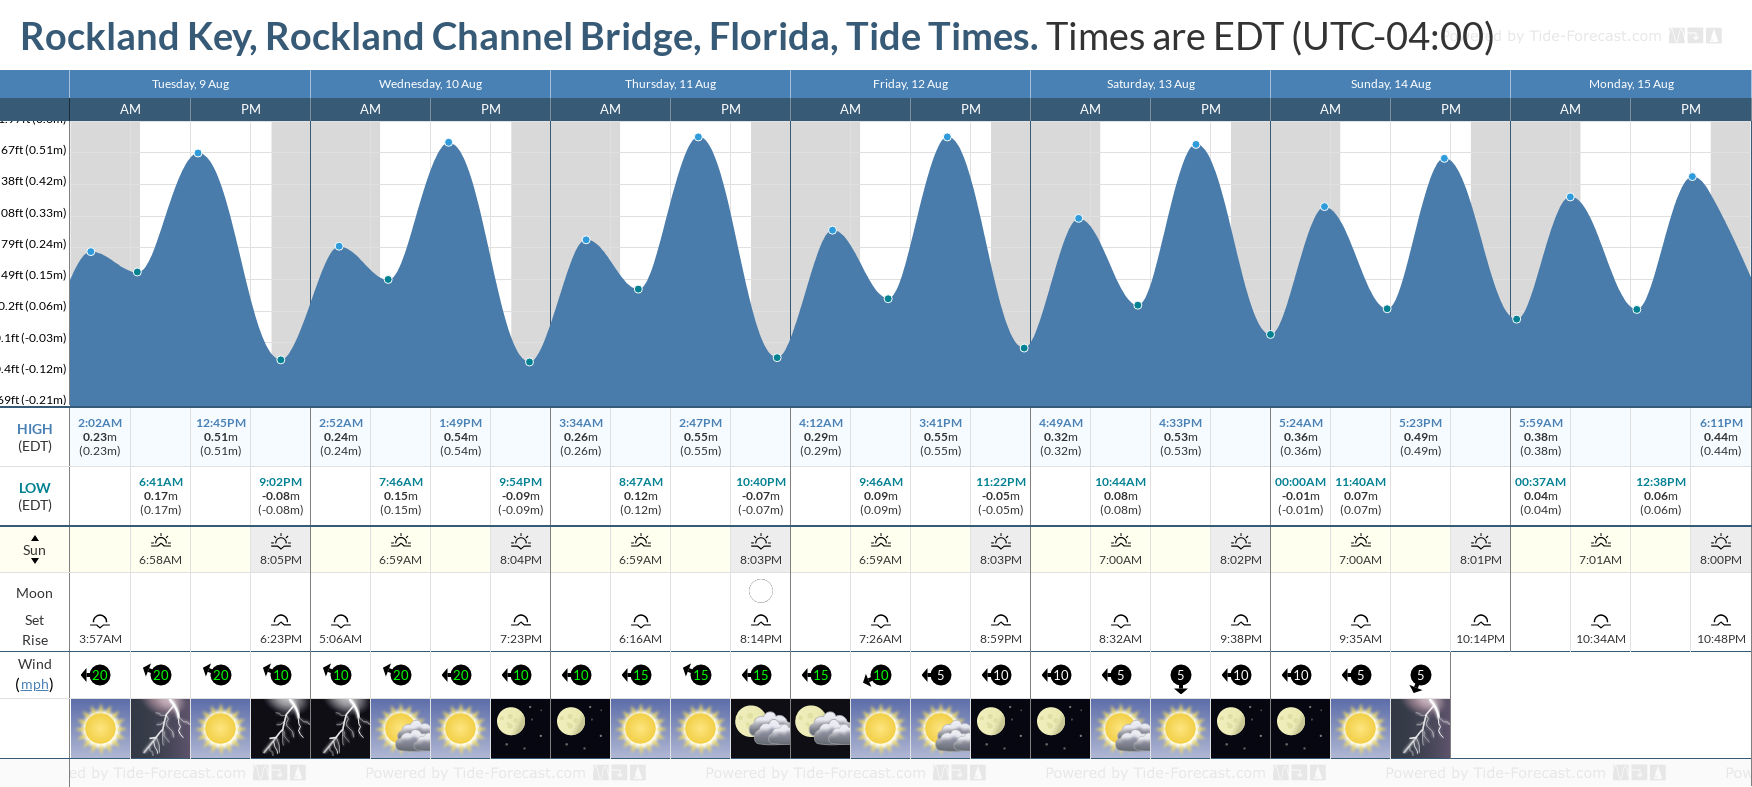 Rockland Key, Rockland Channel Bridge, Florida Tide Chart including high and low tide tide times for the next 7 days